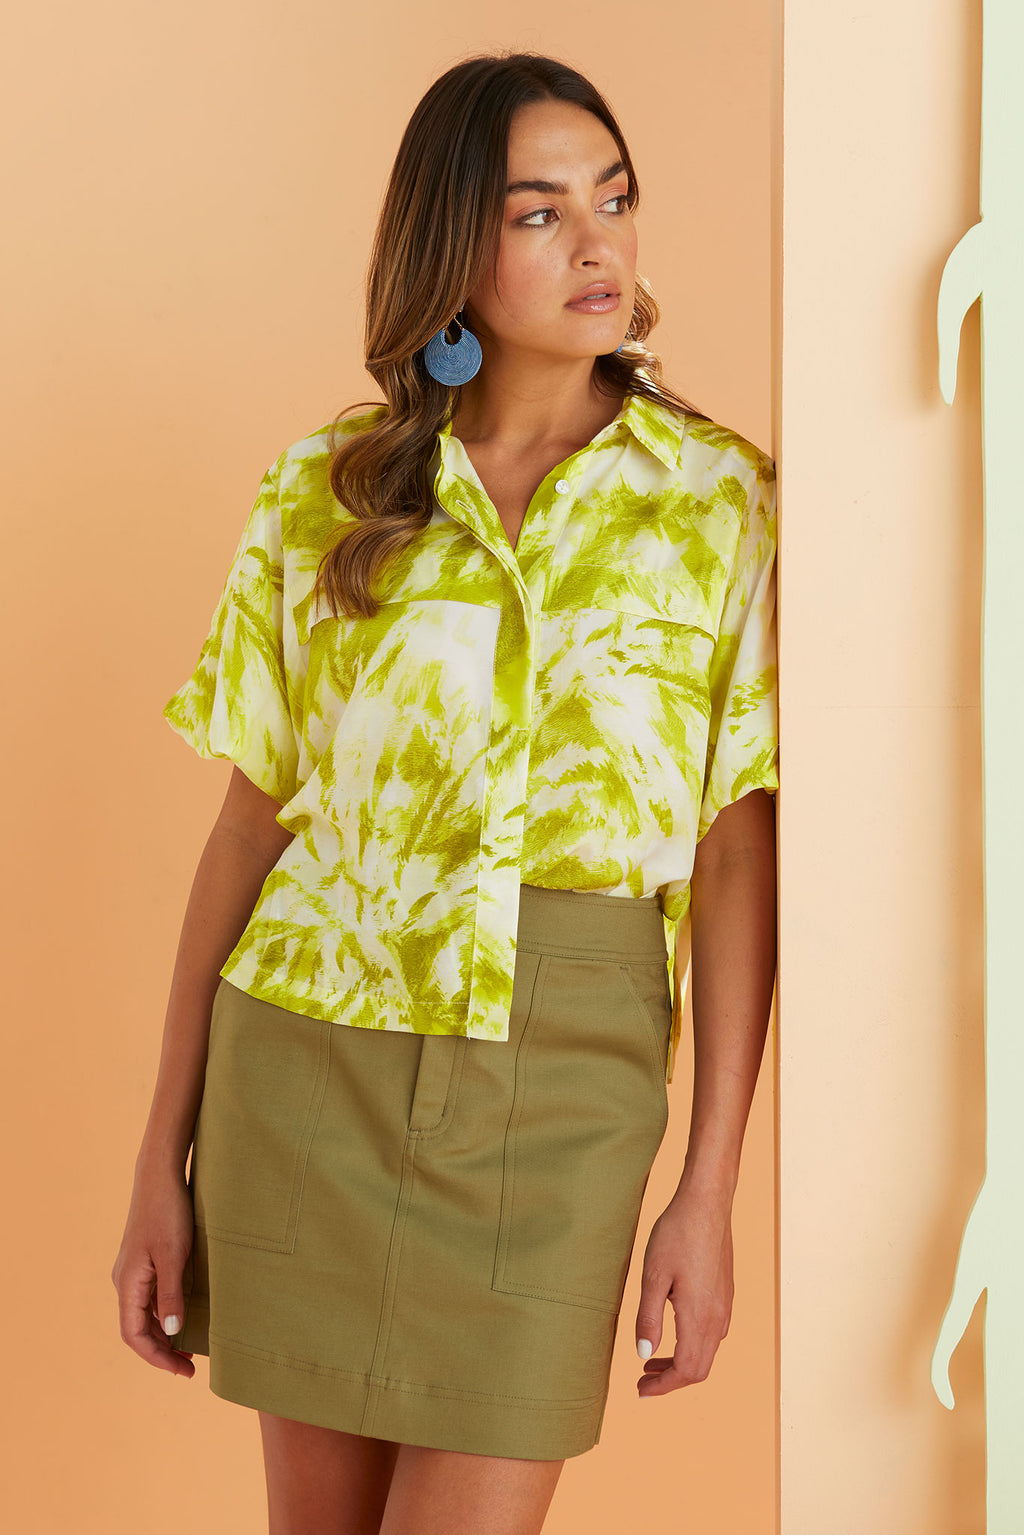 braden skirt in olive worn with the Reagan Resort shirt in lime citrus green